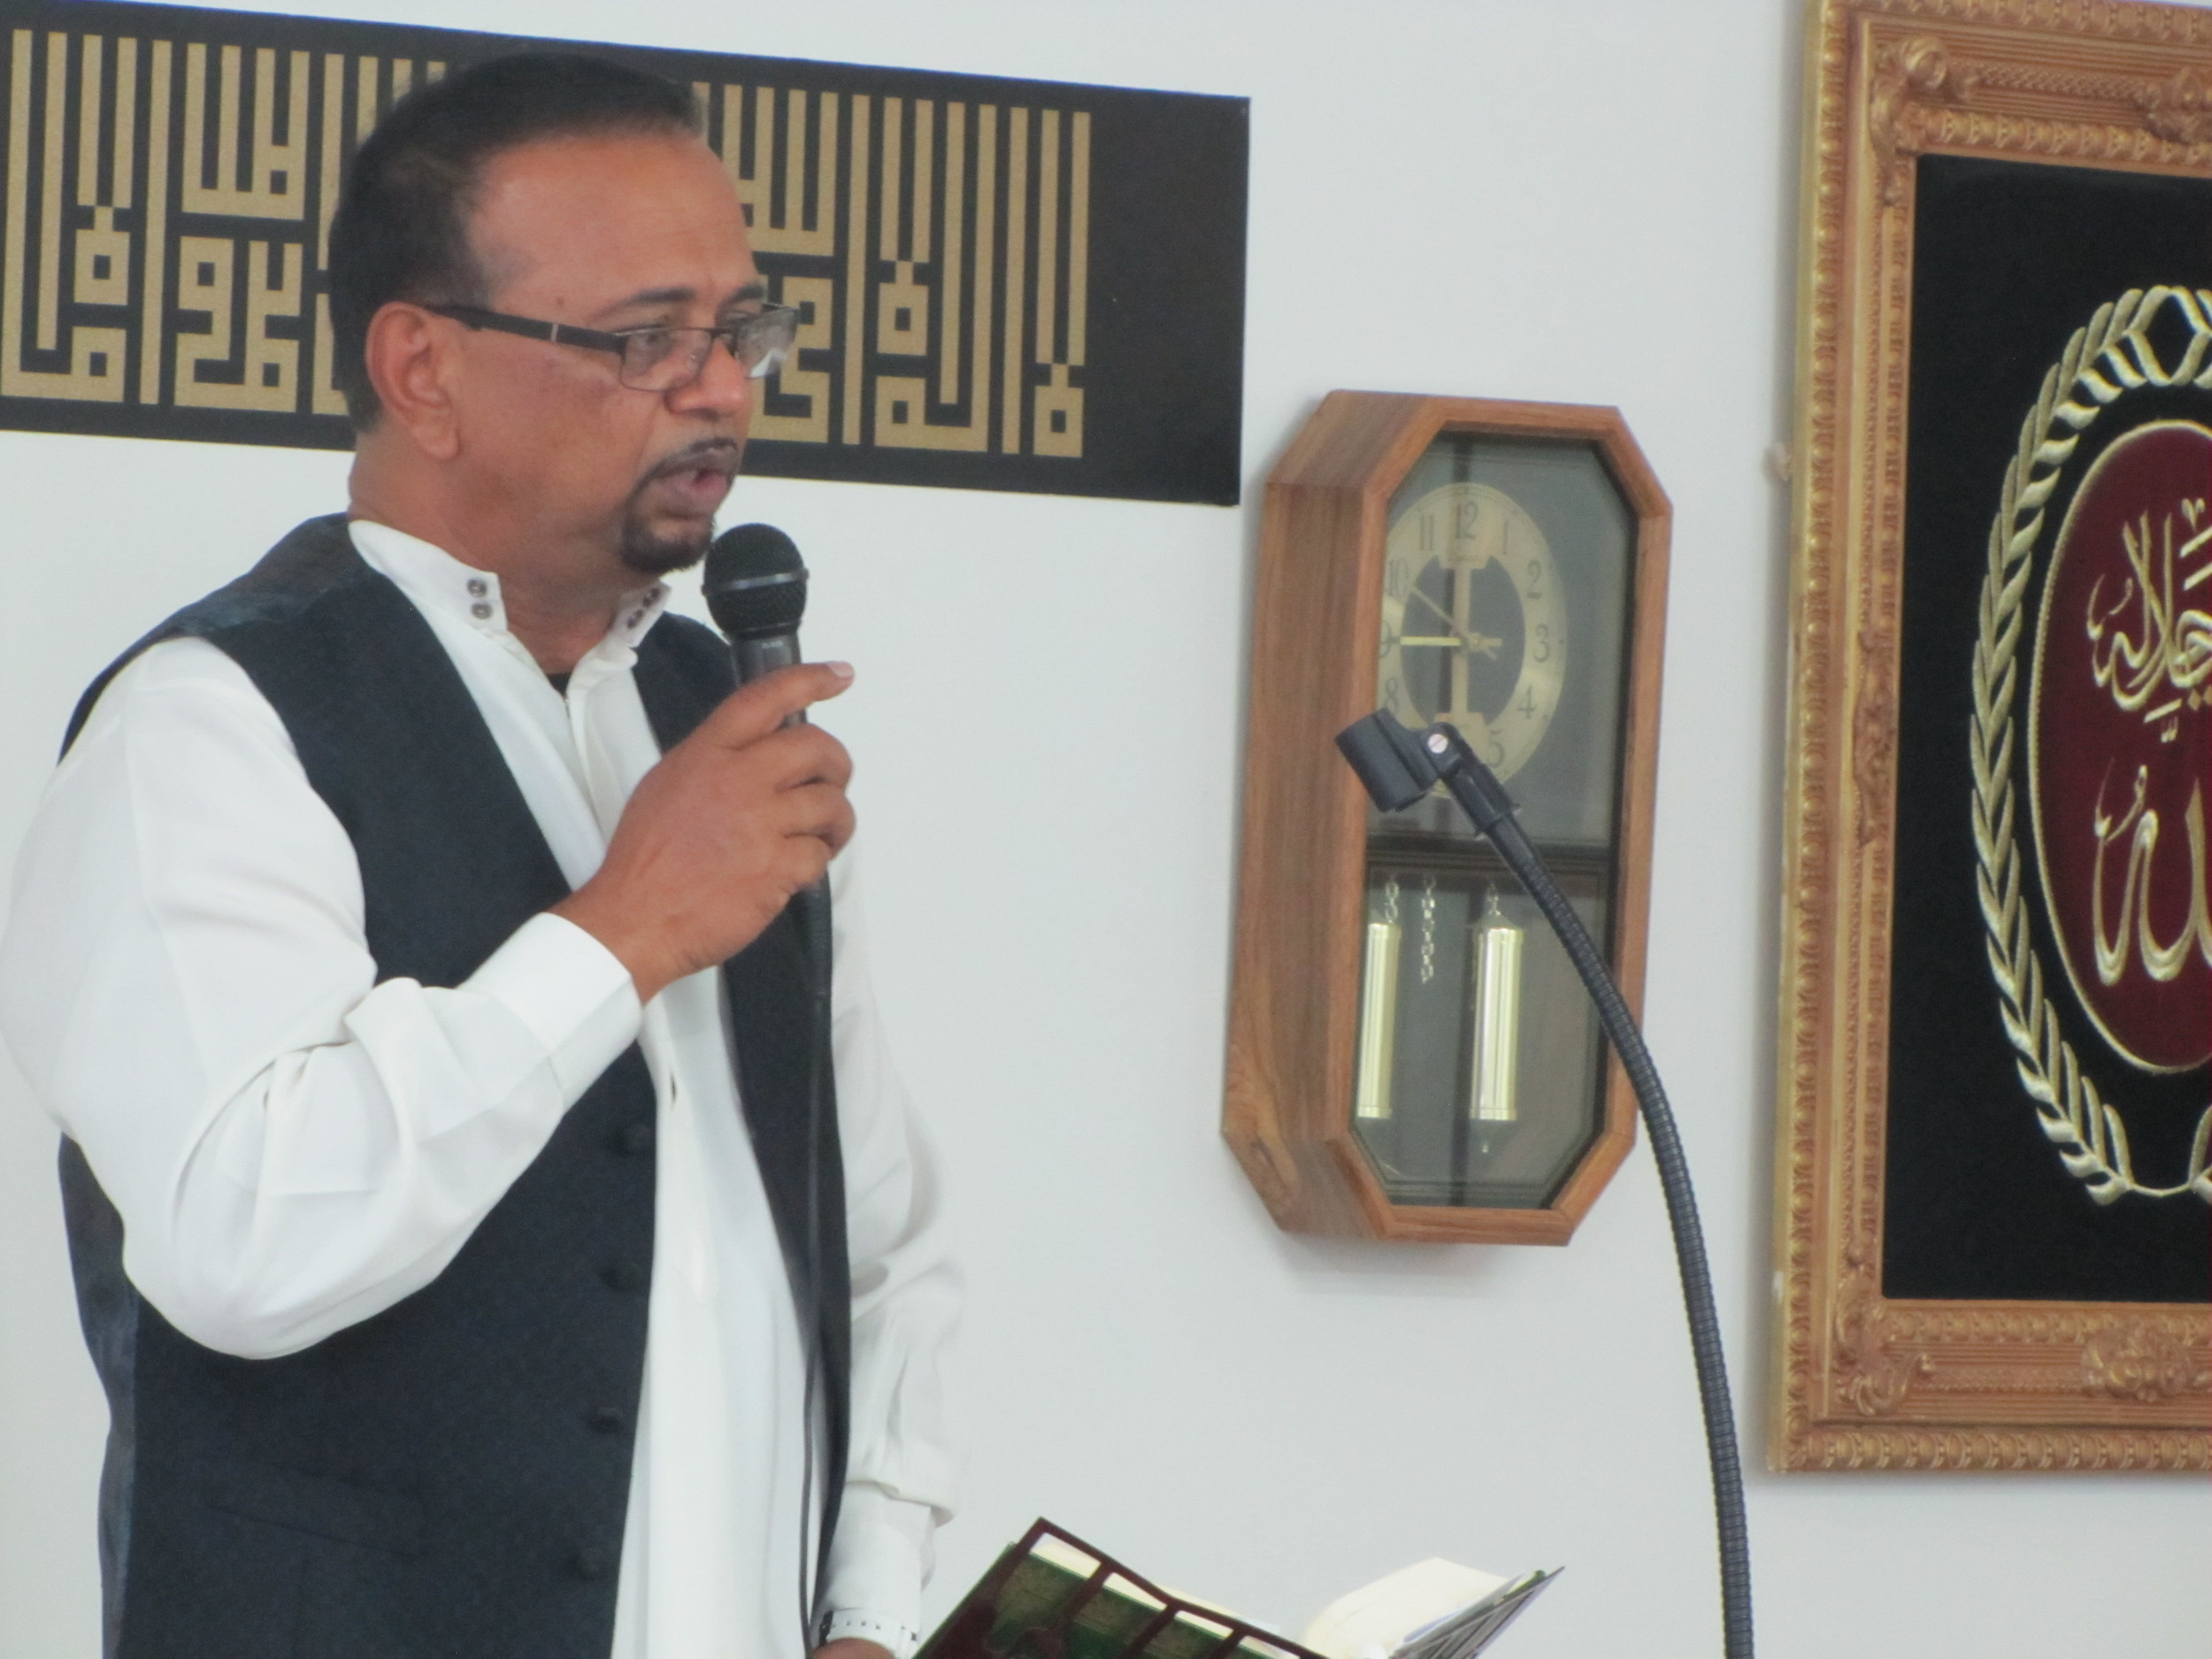 Community leader Nassim Baksh gives a sermon at the Masjid Quba Islamic Center of Cartersville Tuesday morning to commemorate Eid al-Adha.